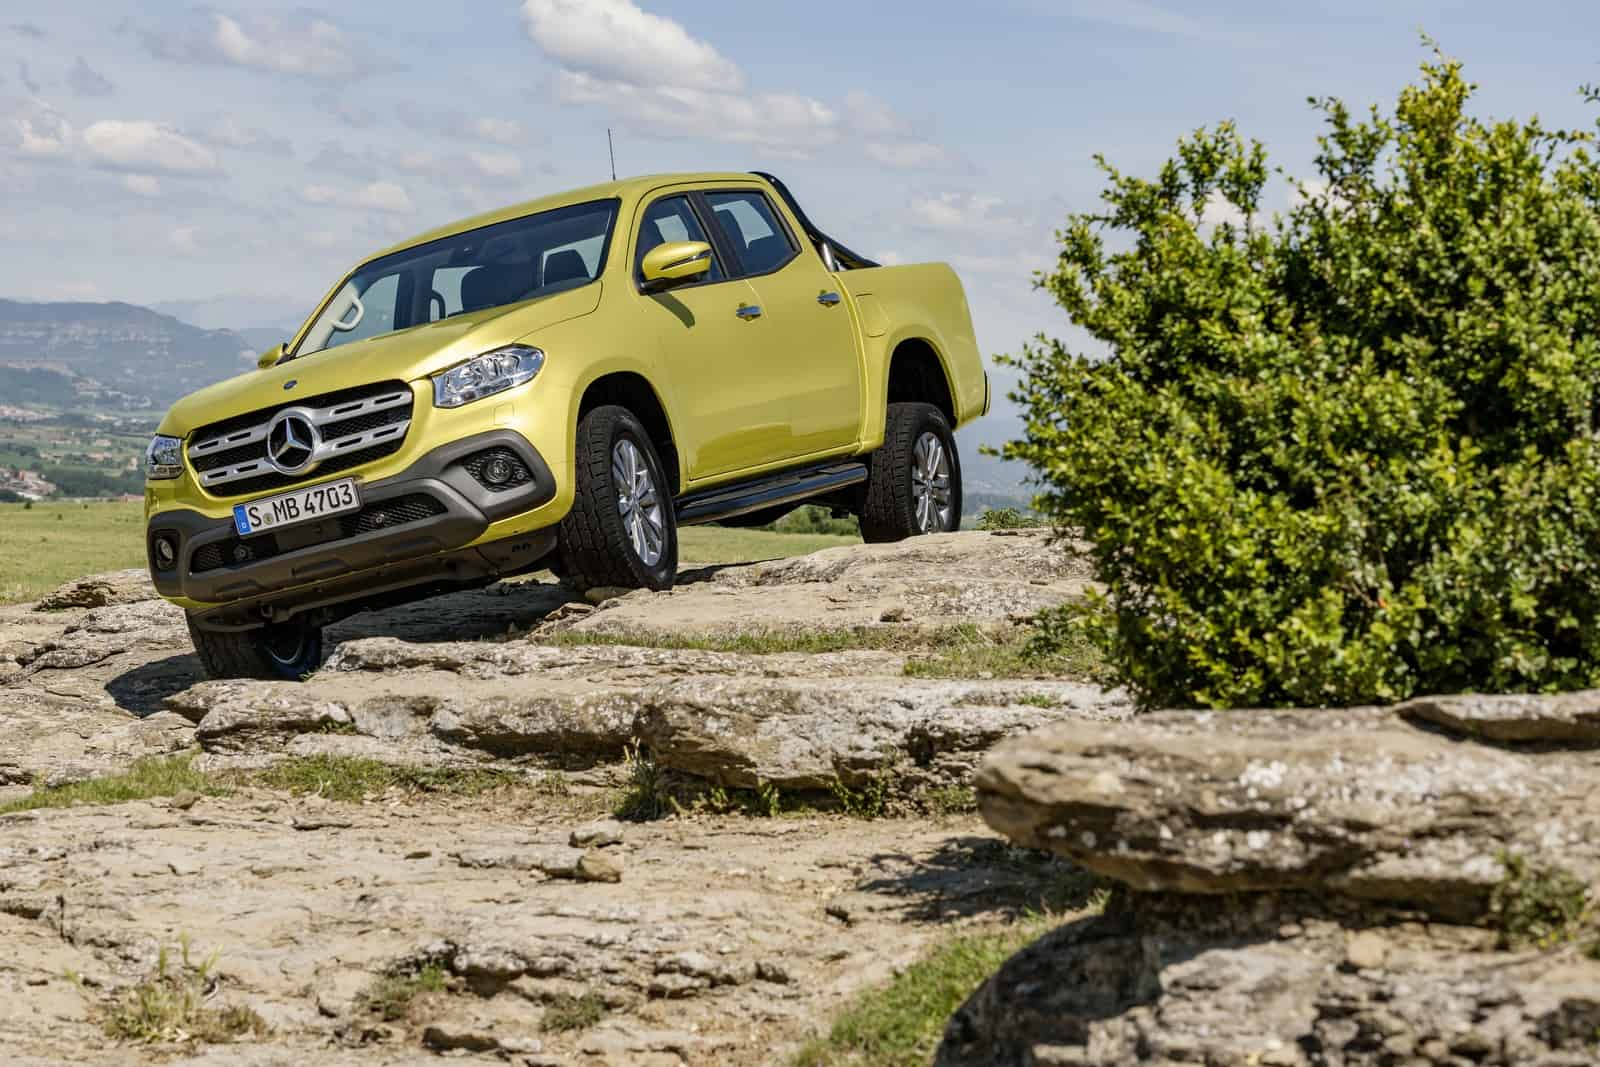 Mercedes-Benz X-Klasse – Exterieur, Limonitgelb metallic, Ausstattungslinie PROGRESSIVE  Mercedes-Benz X-Class – Exterior, limonite yellow metallic, design and equipment line PROGRESSIVE